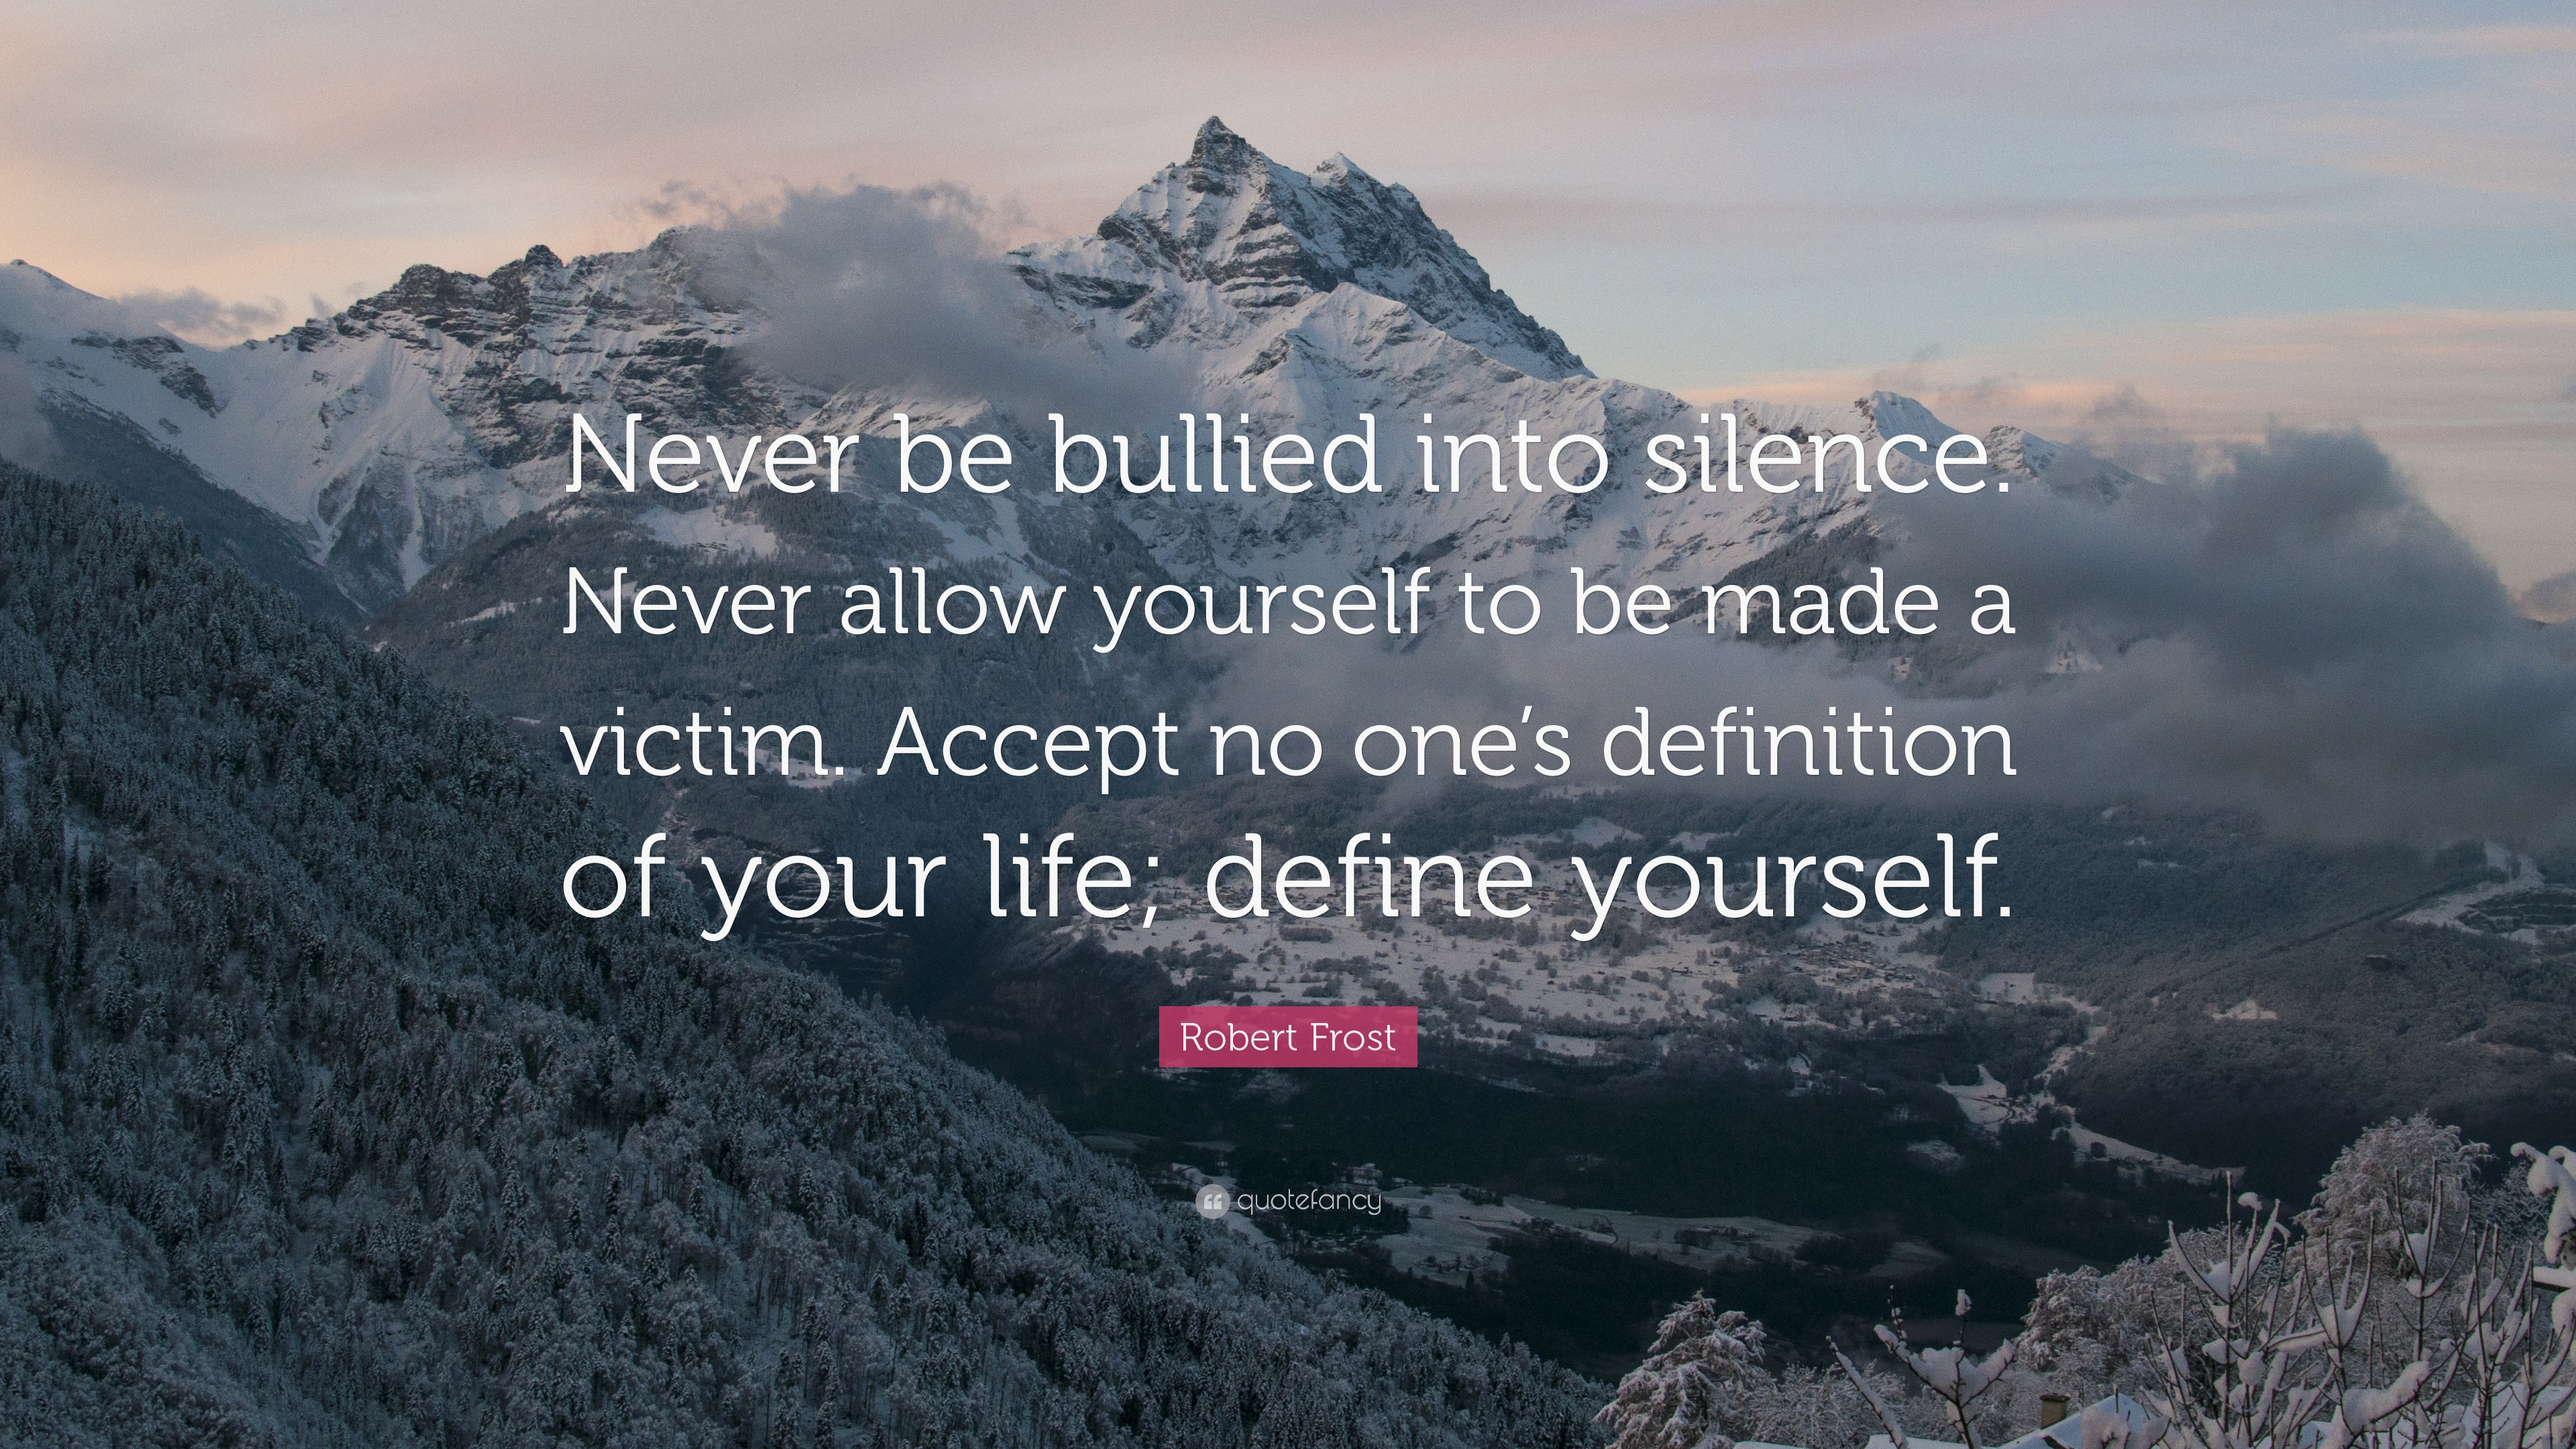 robert frost quote never be bullied into silence never allow